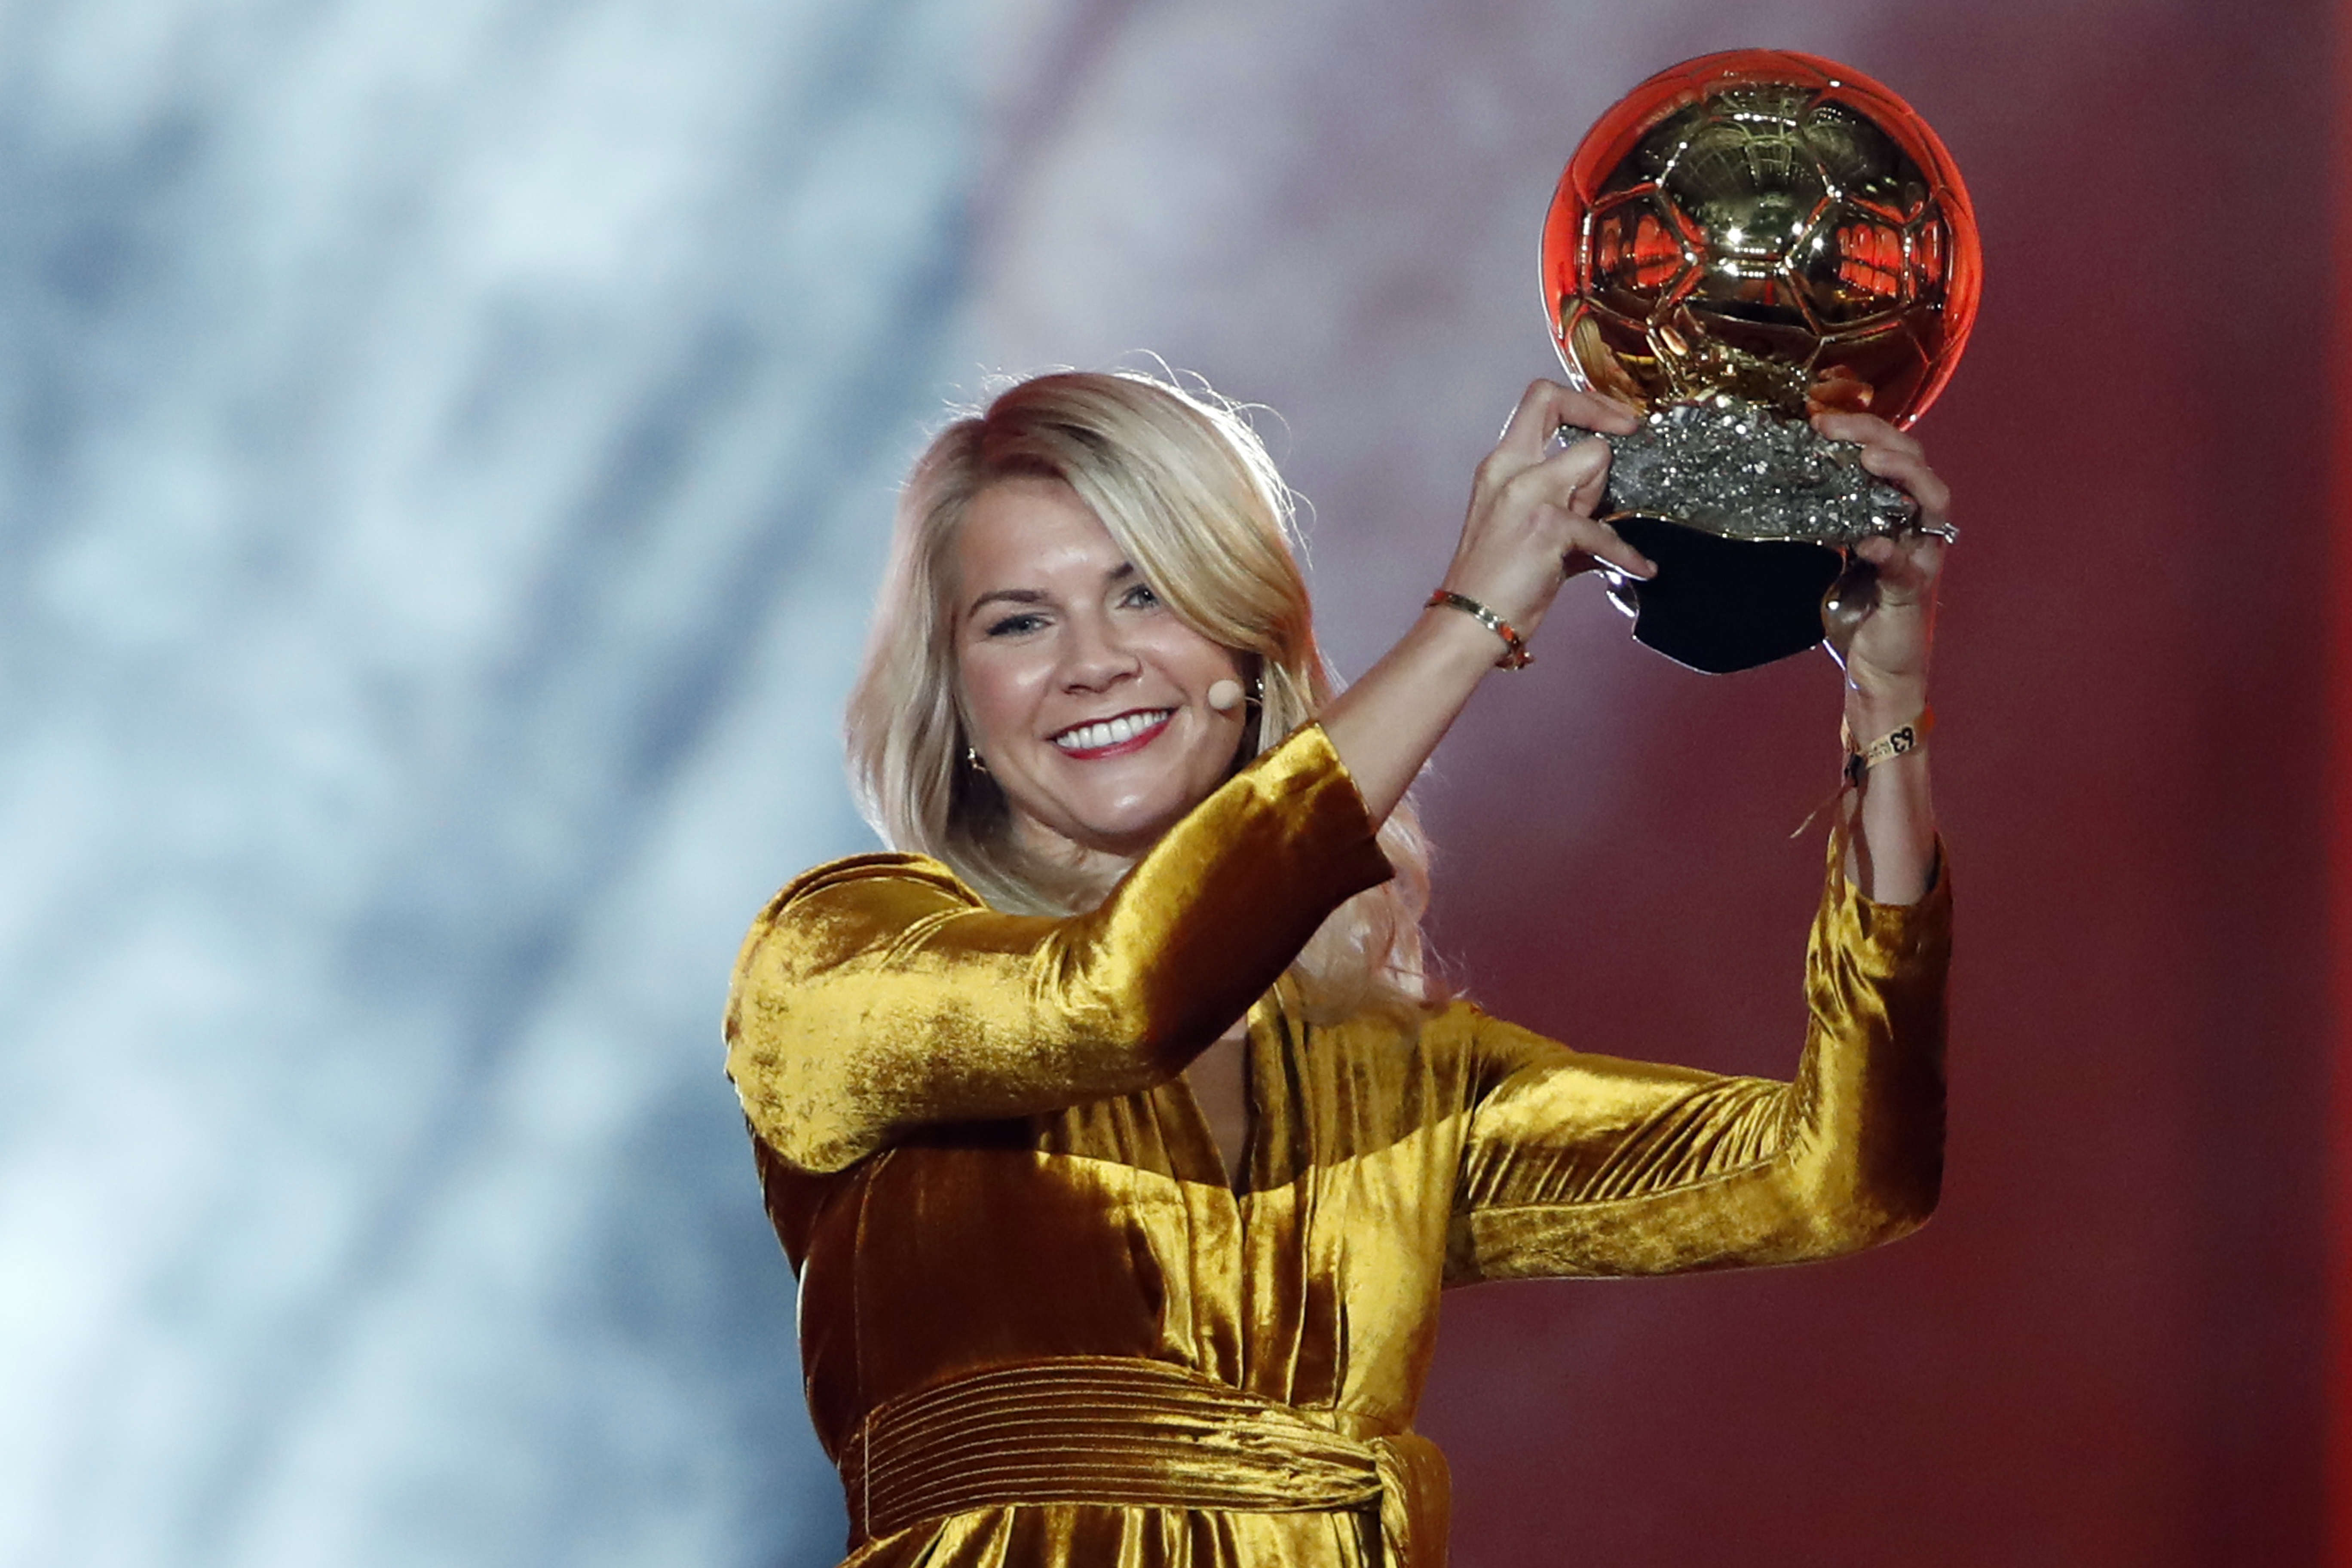 DJ Solveig takes a rap for twerking question to Ballon d'Or winner Ada Hegerberg